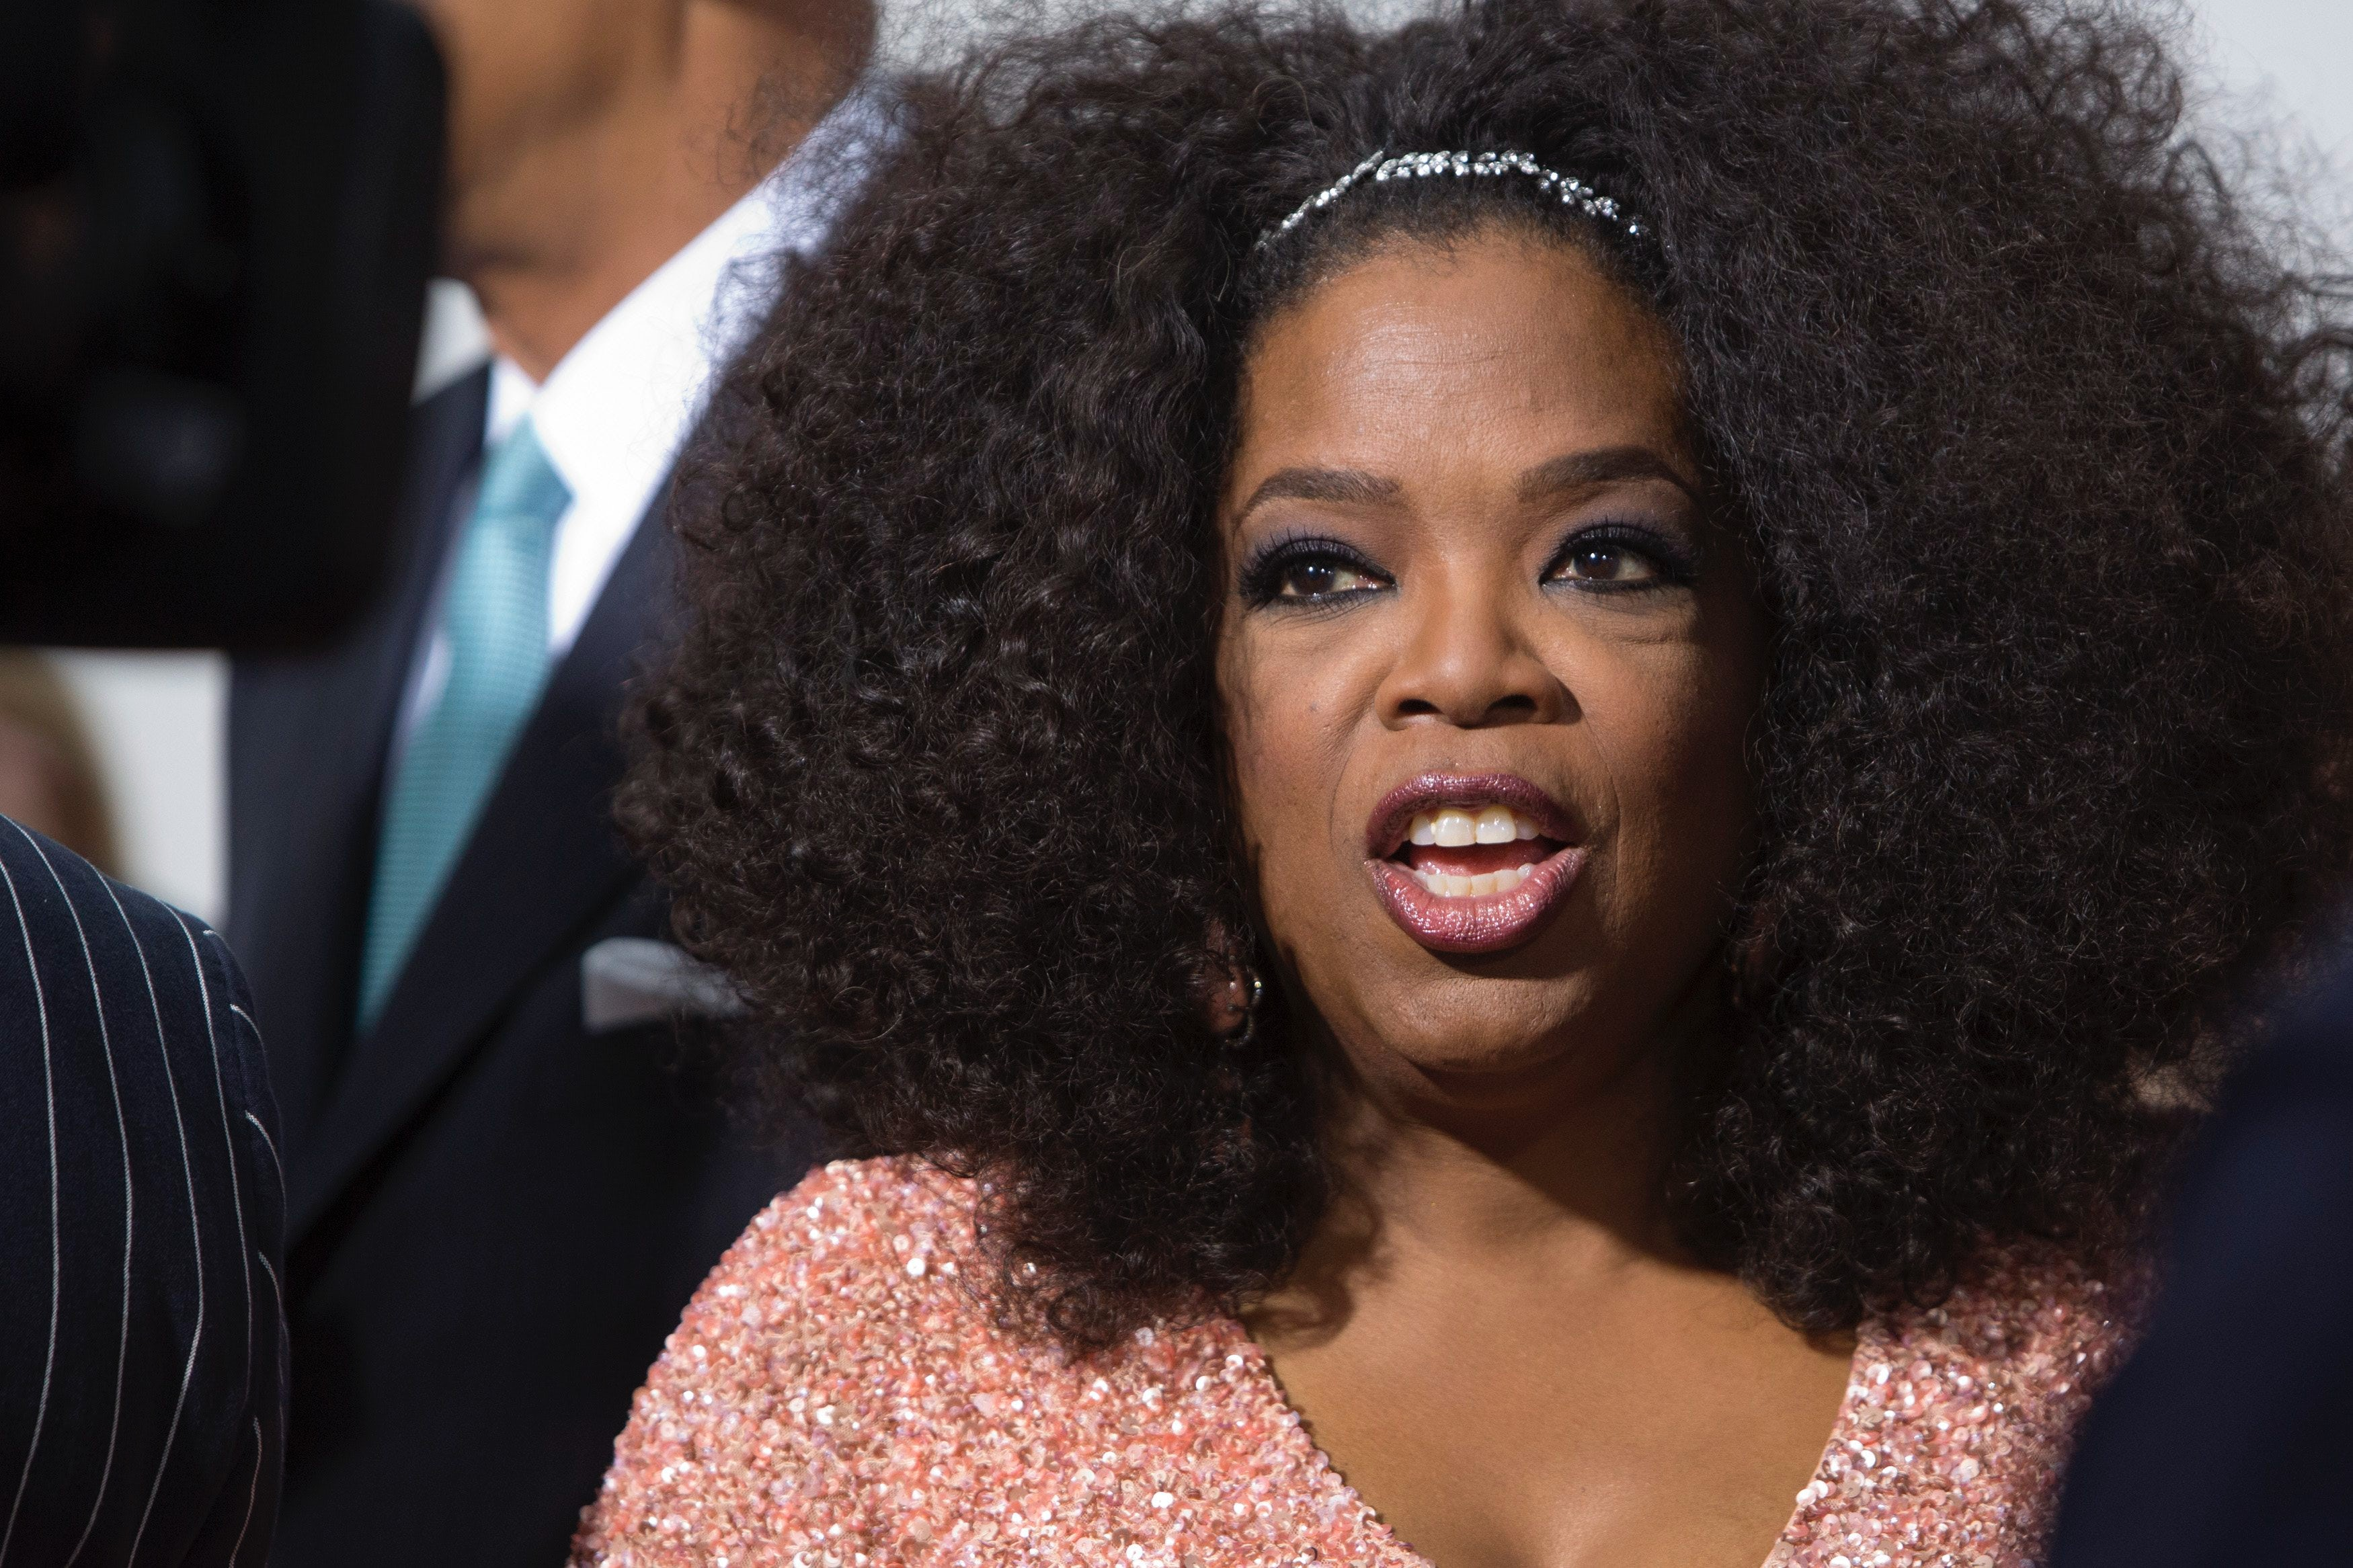 Oprah Winfrey | Source: Reuters